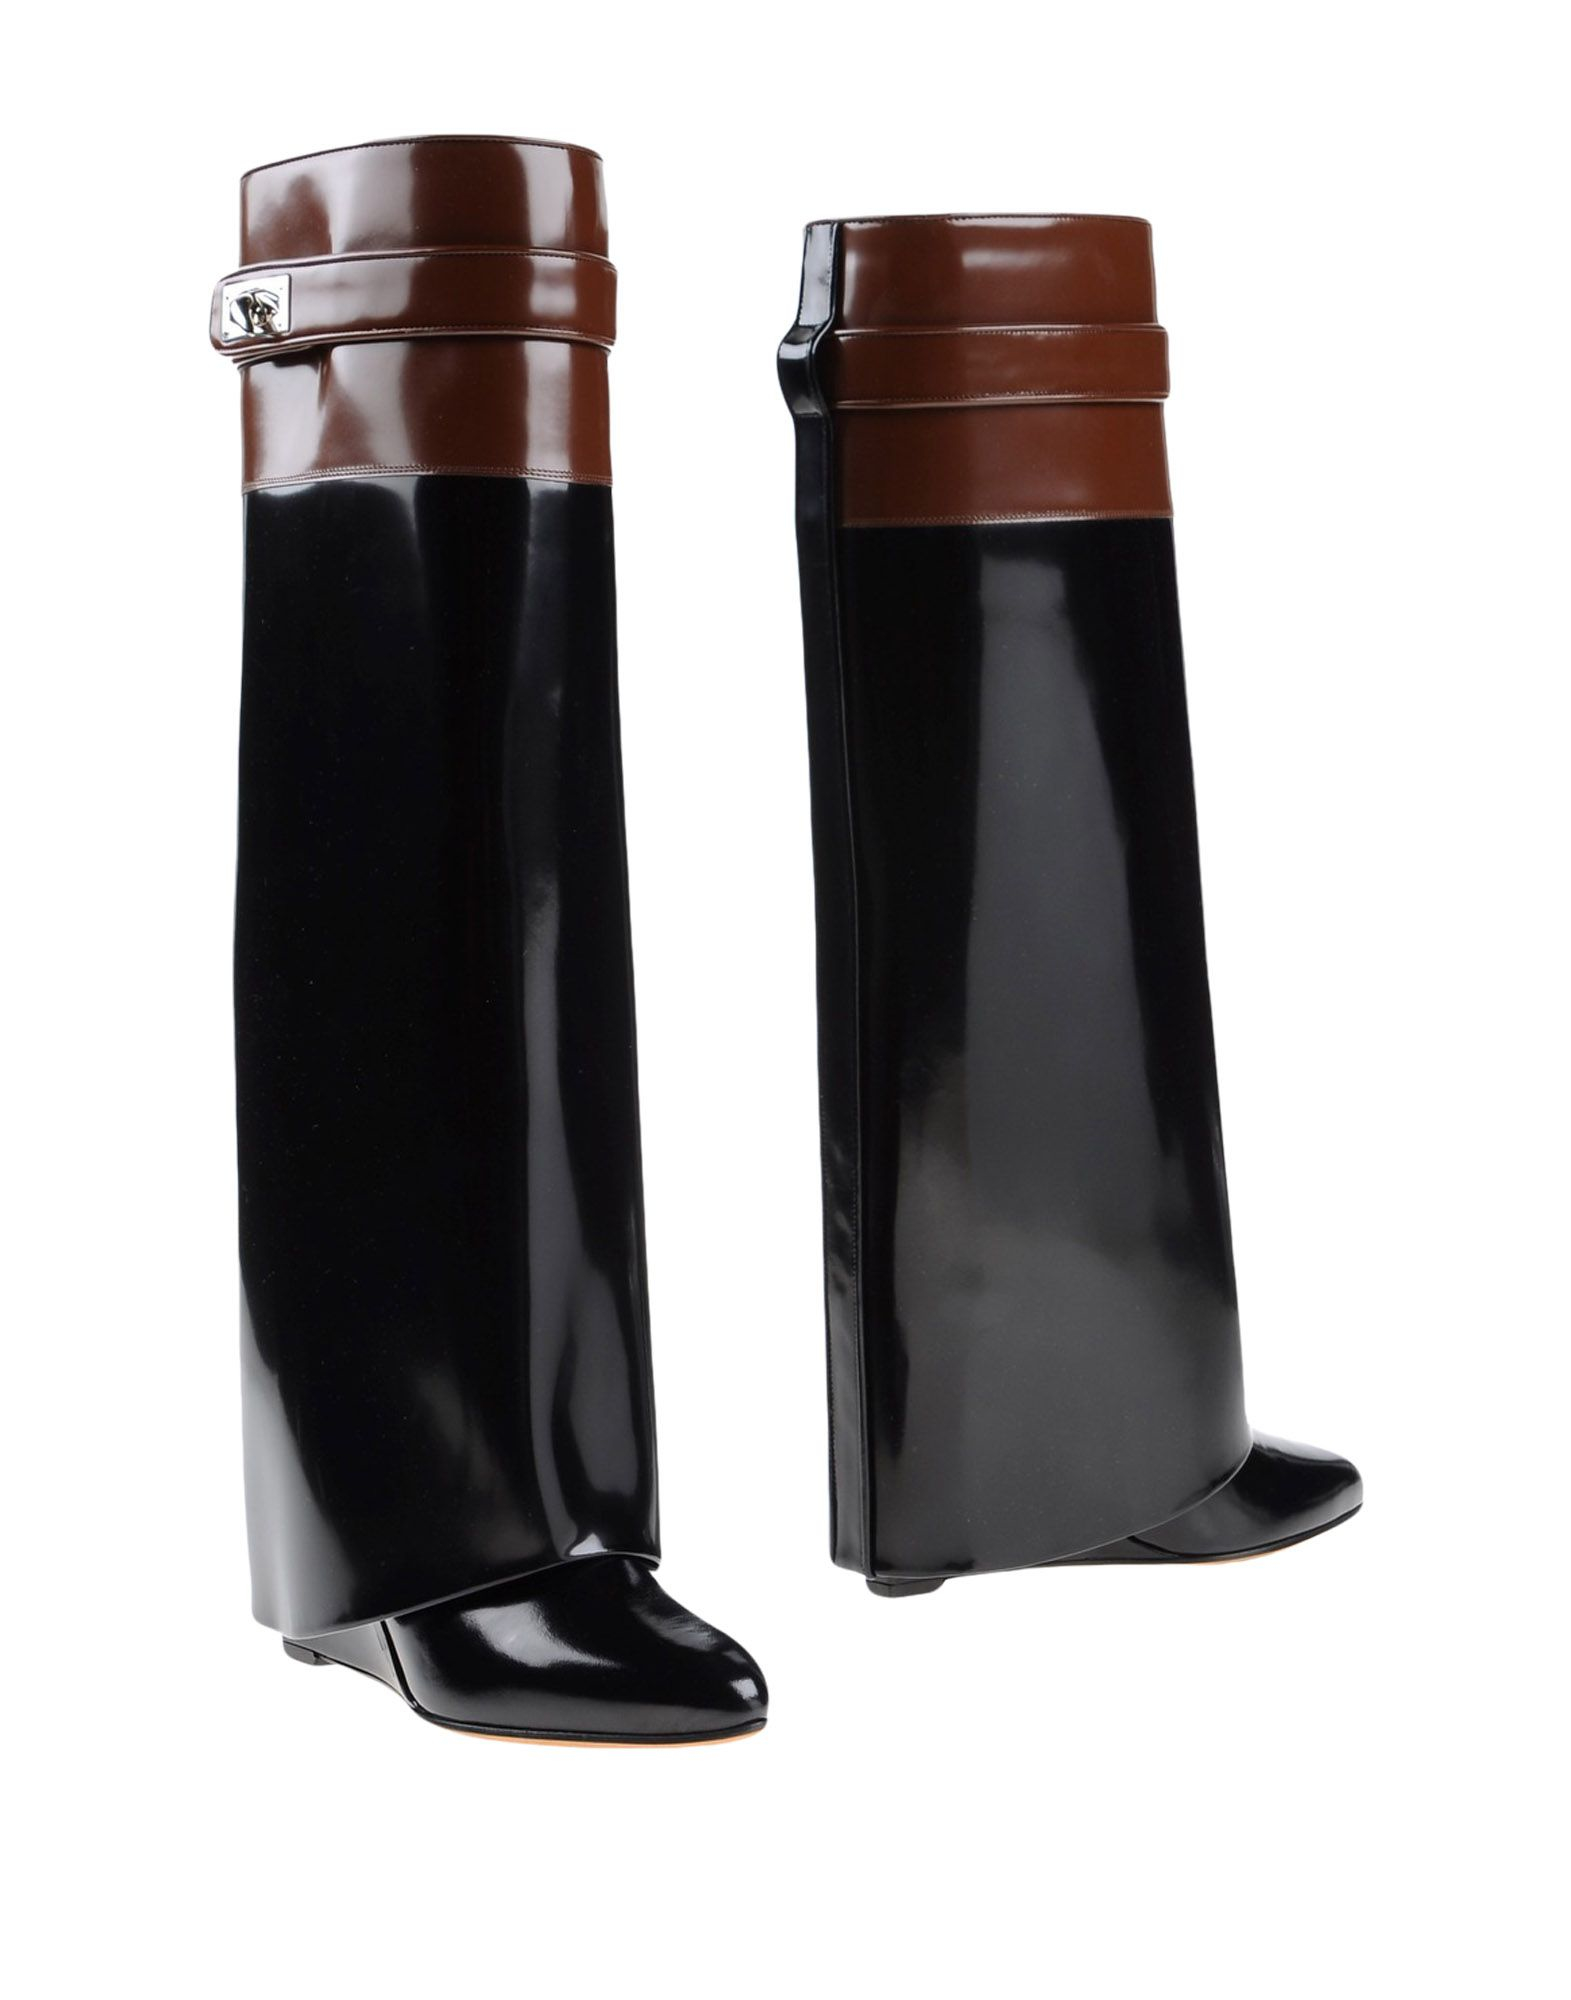 Givenchy Boots in Black | Lyst